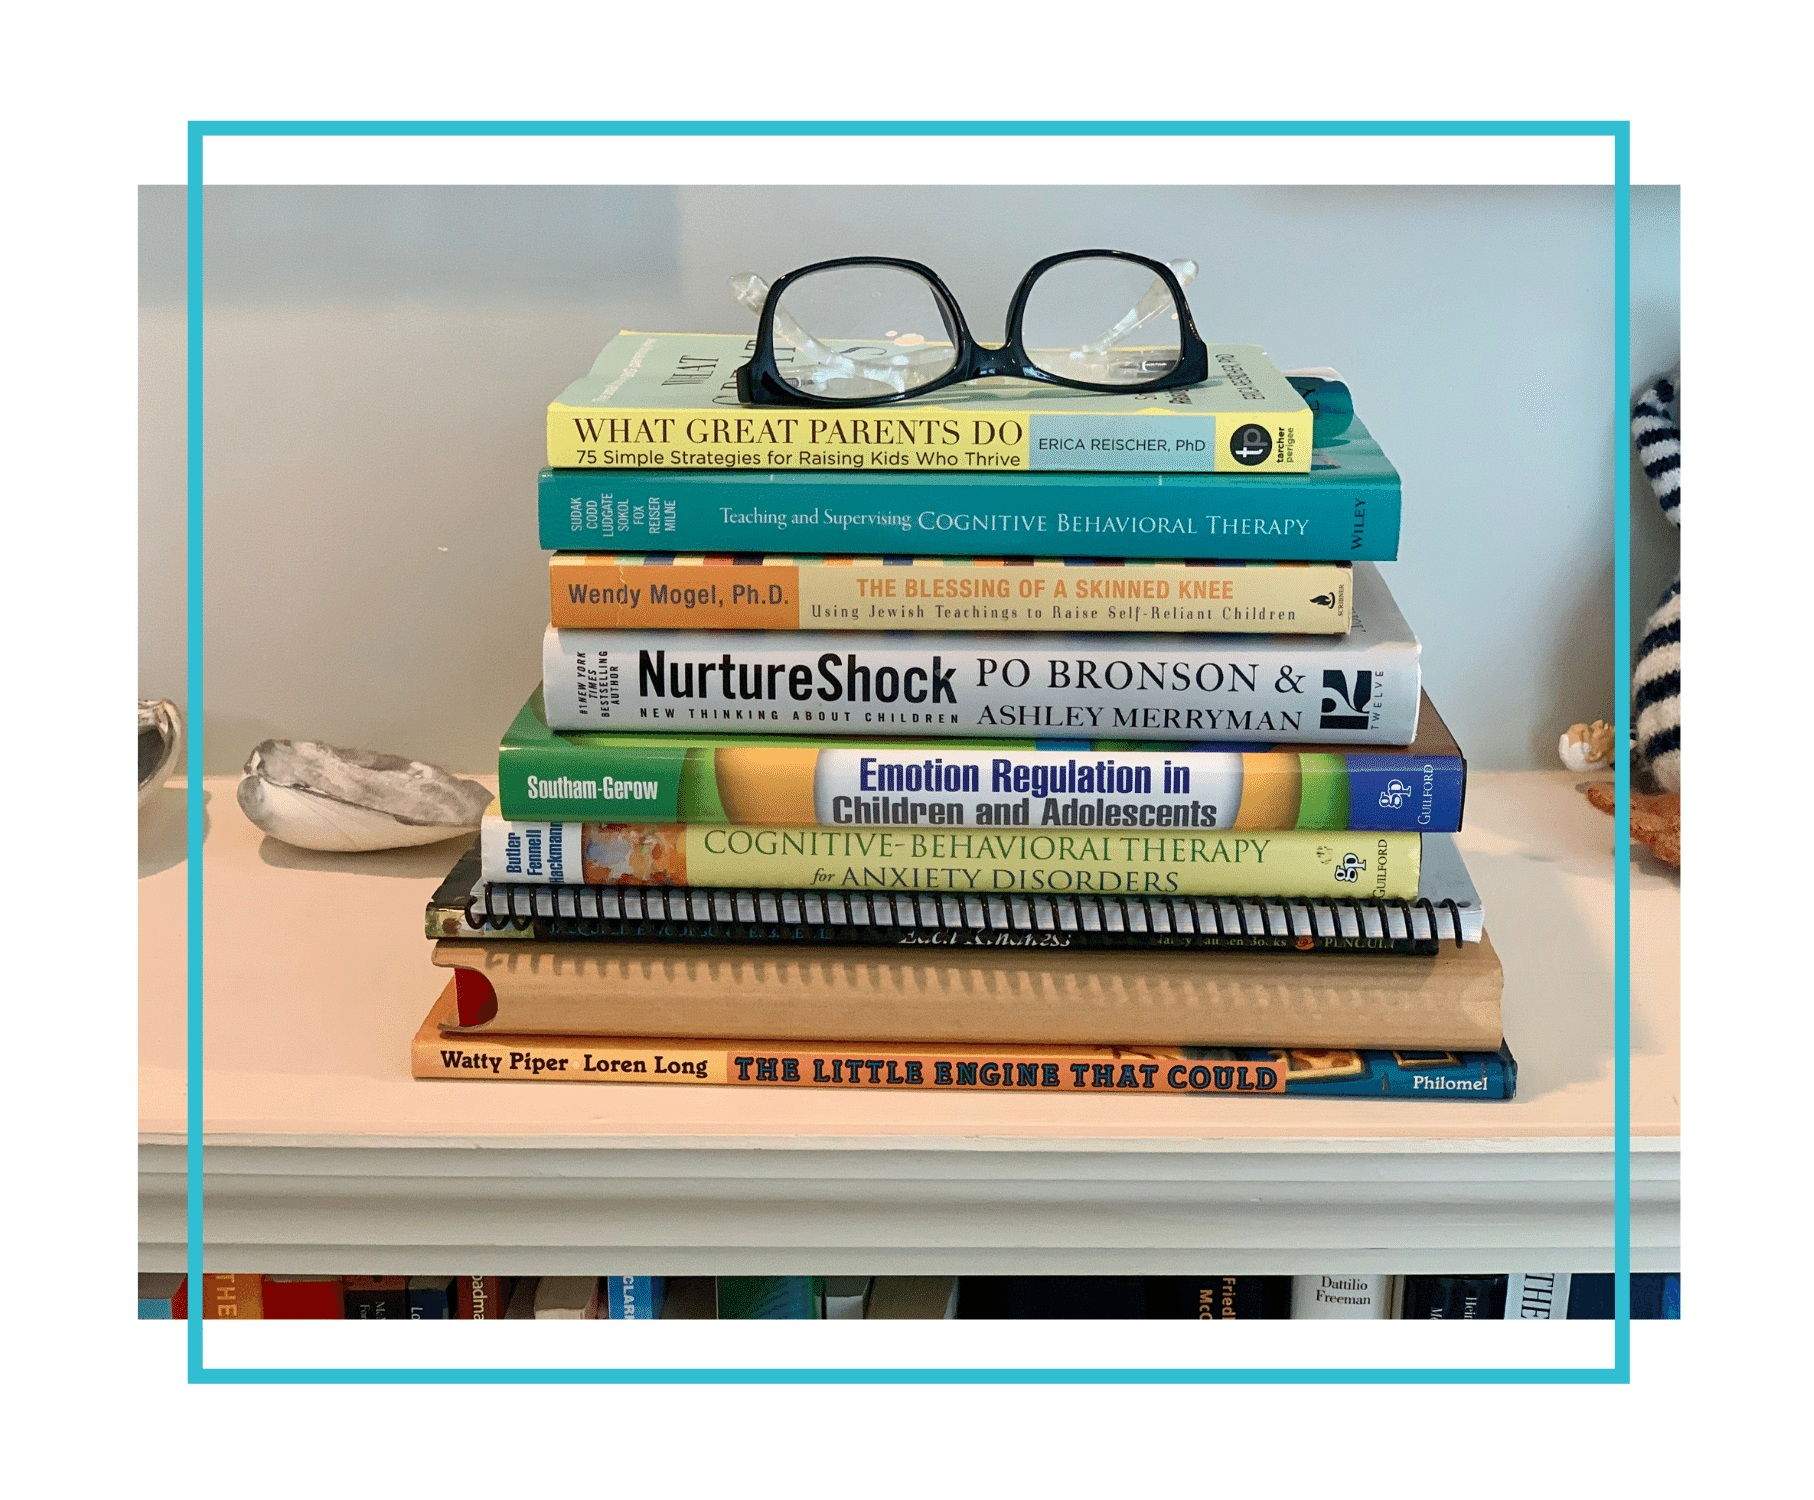 Resource Library - Welcome to my library! The following links will take you to resources for kids, parents, and clinicians. Please check back in the future as more items will be uploaded.